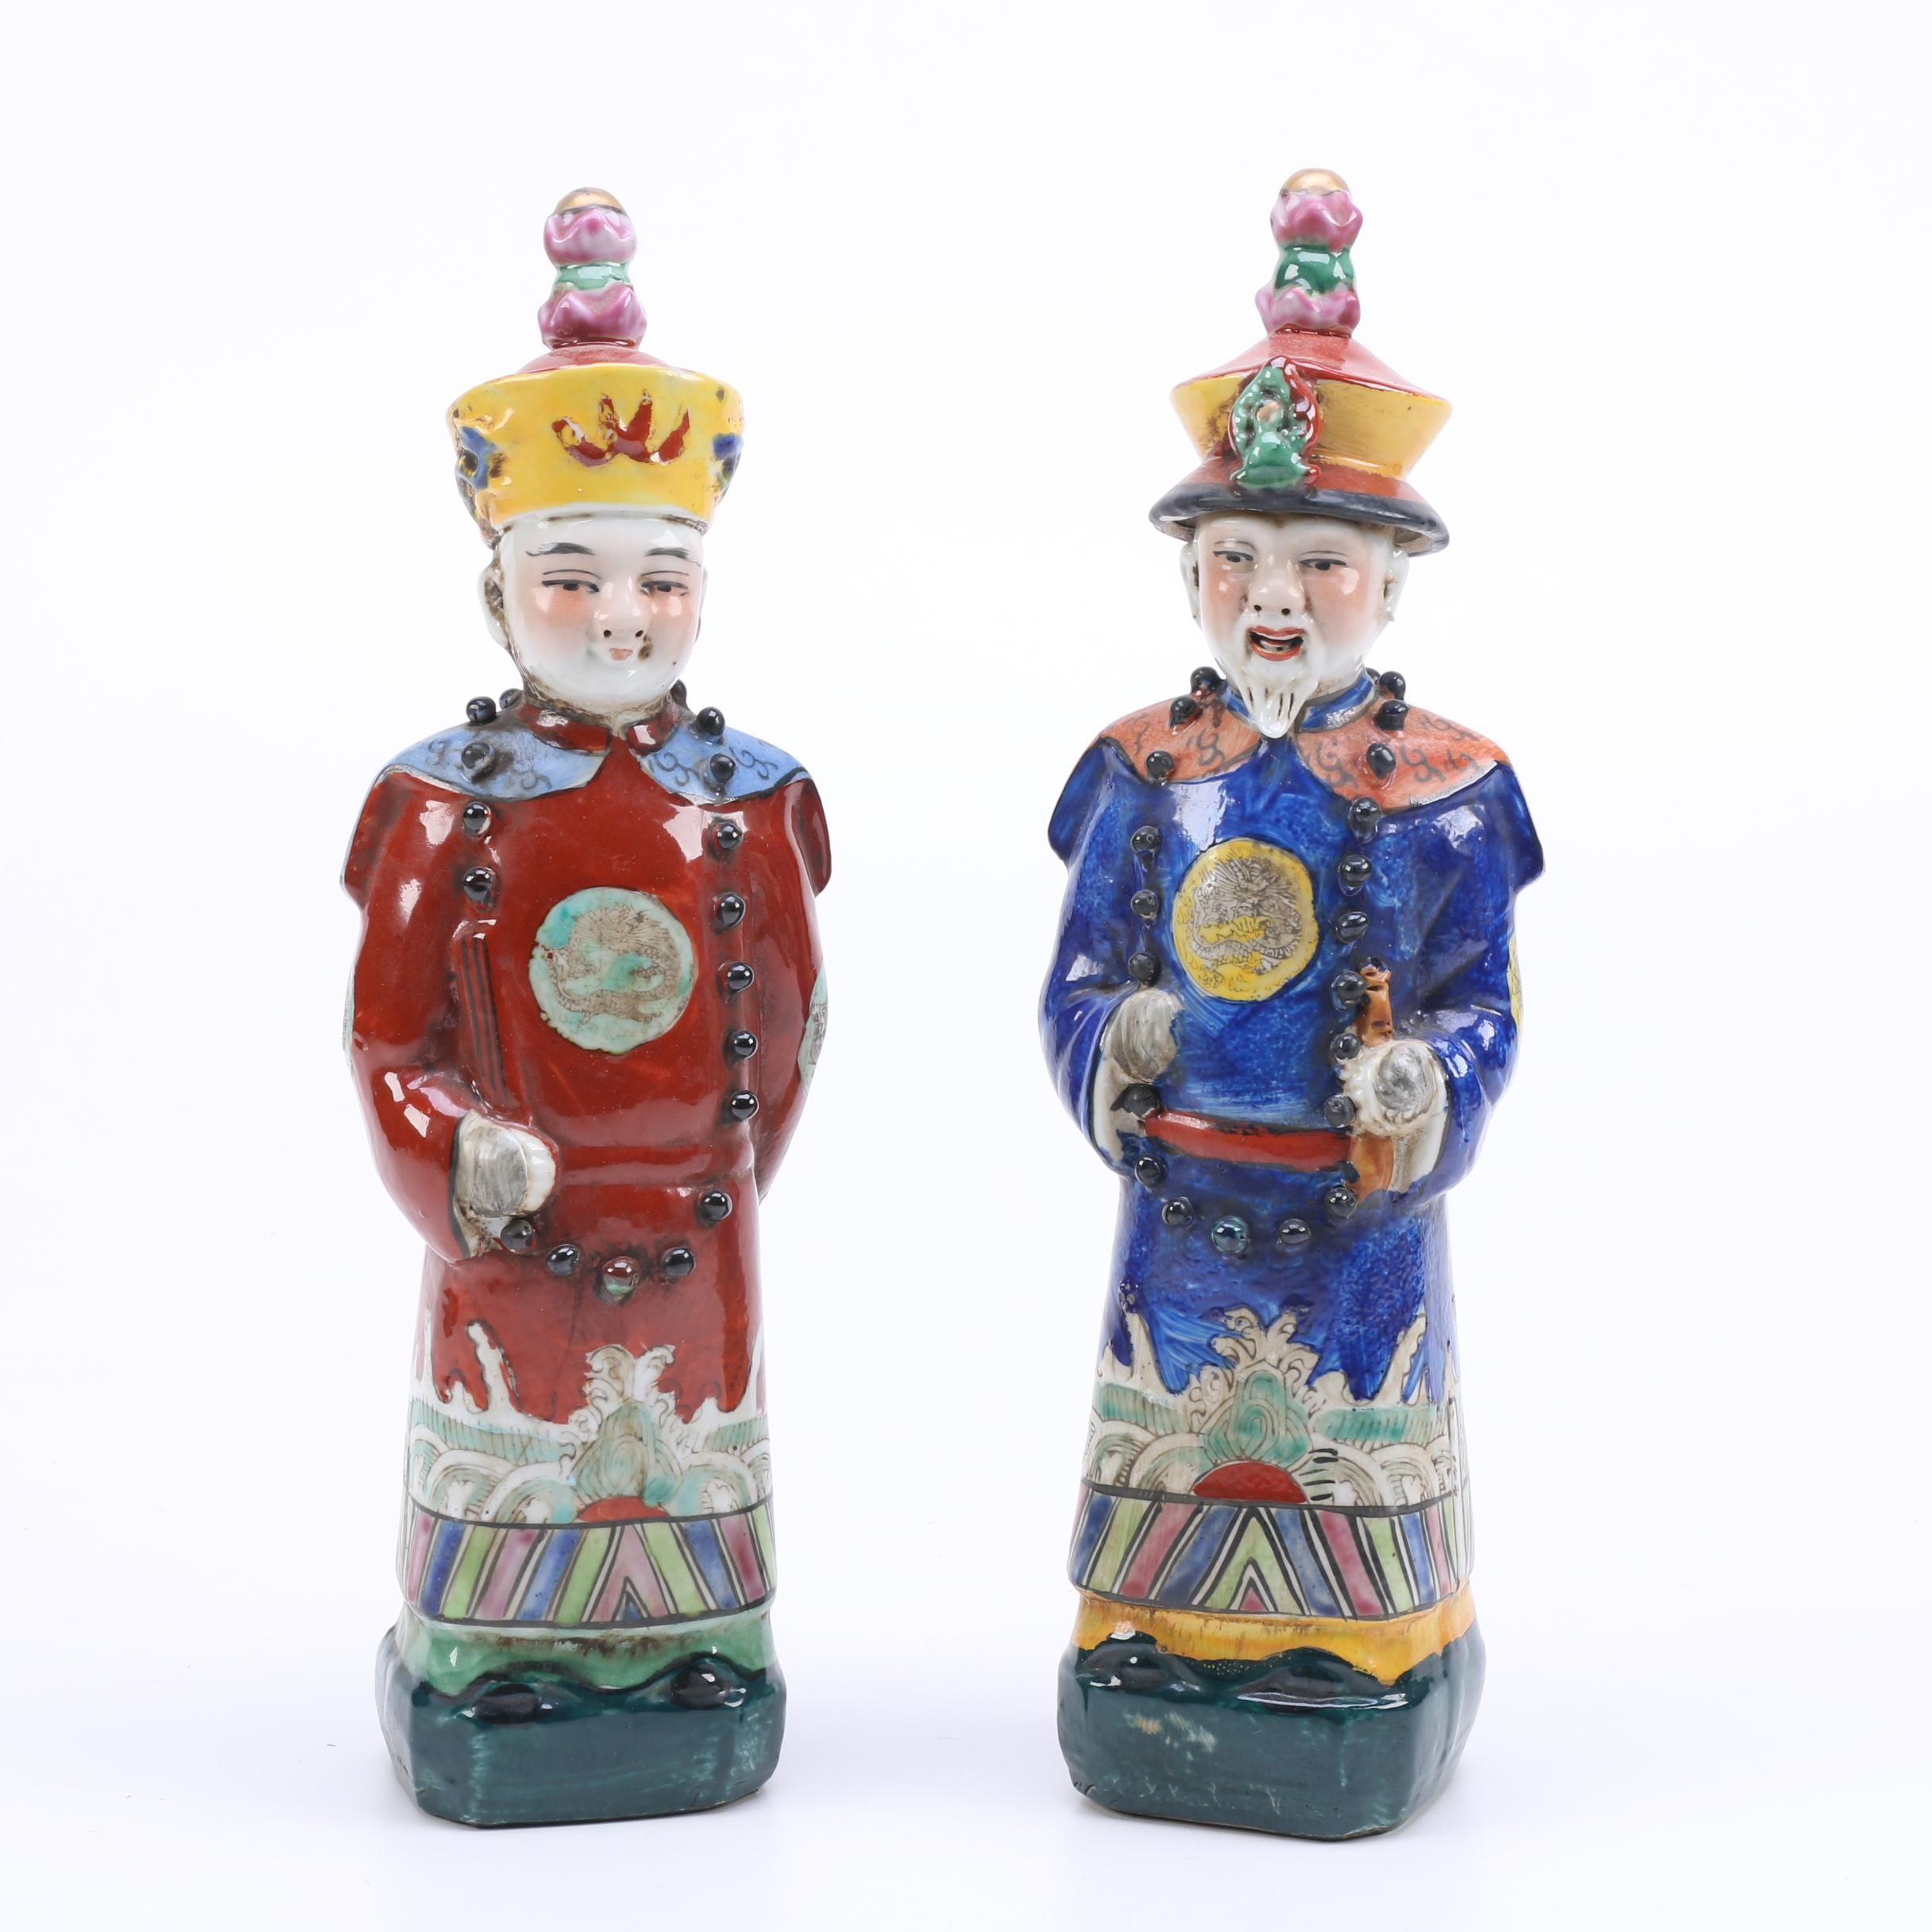 Vintage Figural Salt and Pepper Shakers Depicting Chinese Emperors